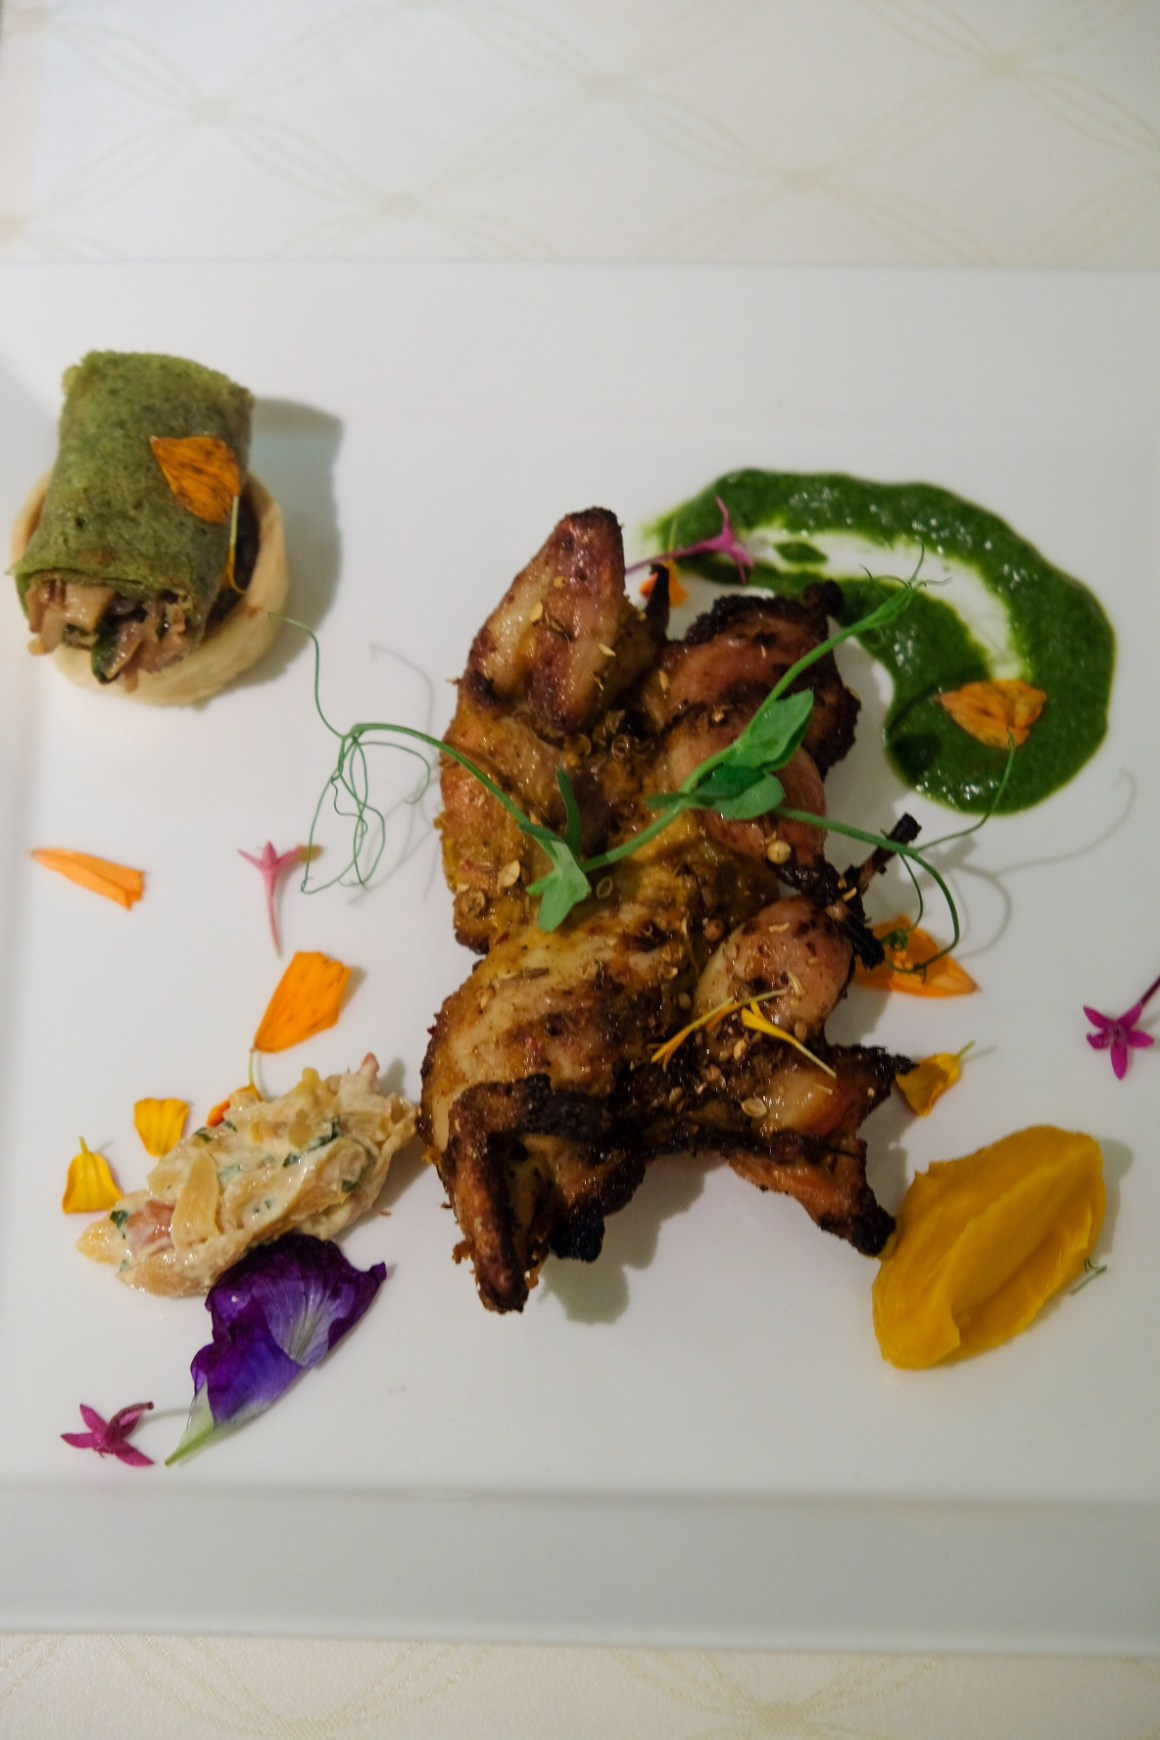 Spring Menu At Tandoor With A Touch of French - Tandoori Quail